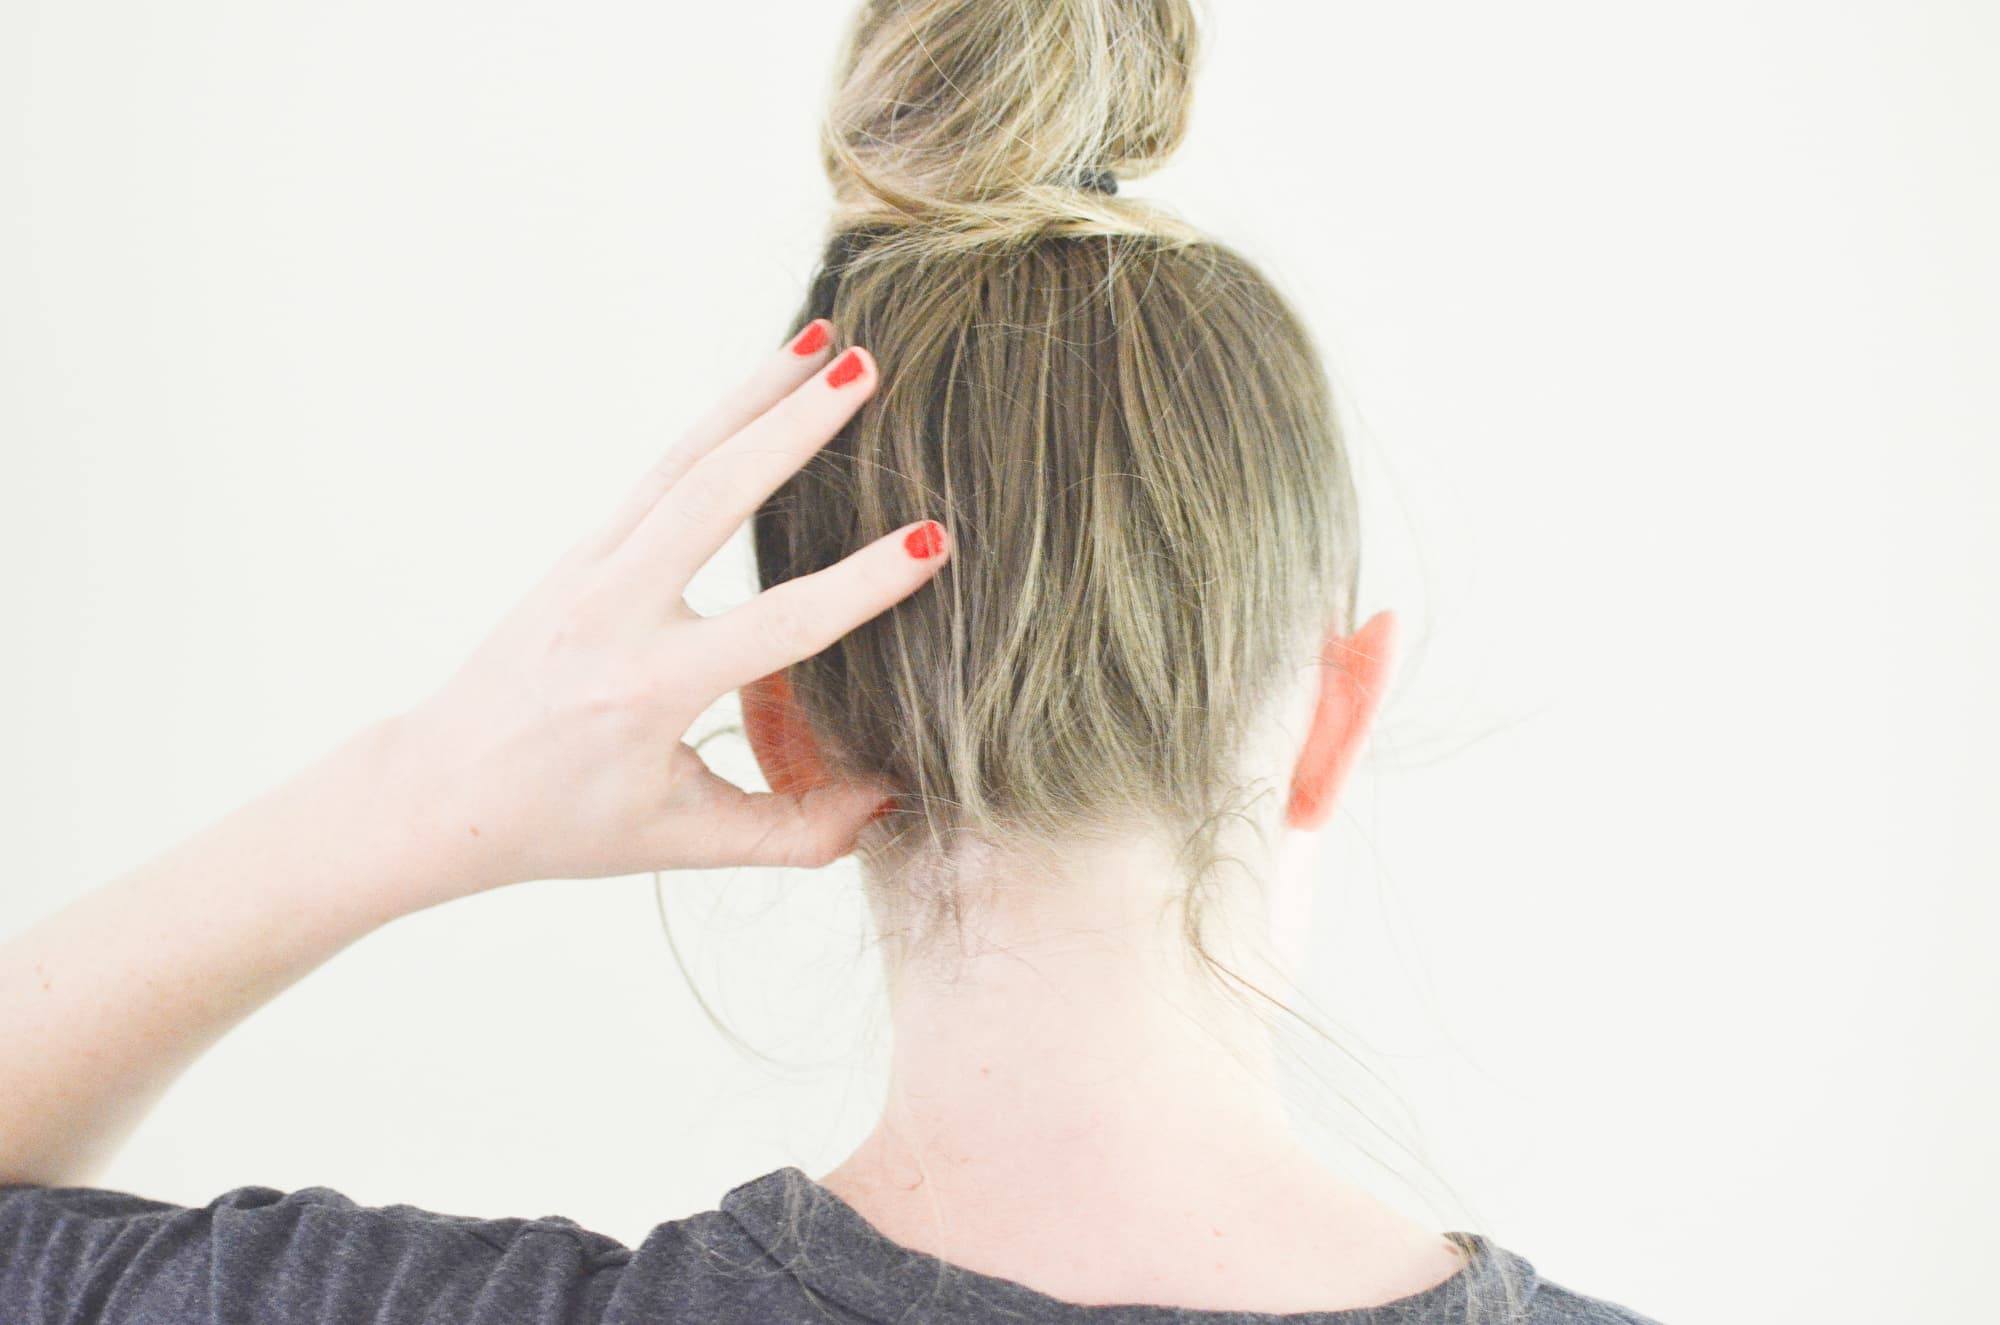 How to Treat Lice Without Chemicals | Momma Society